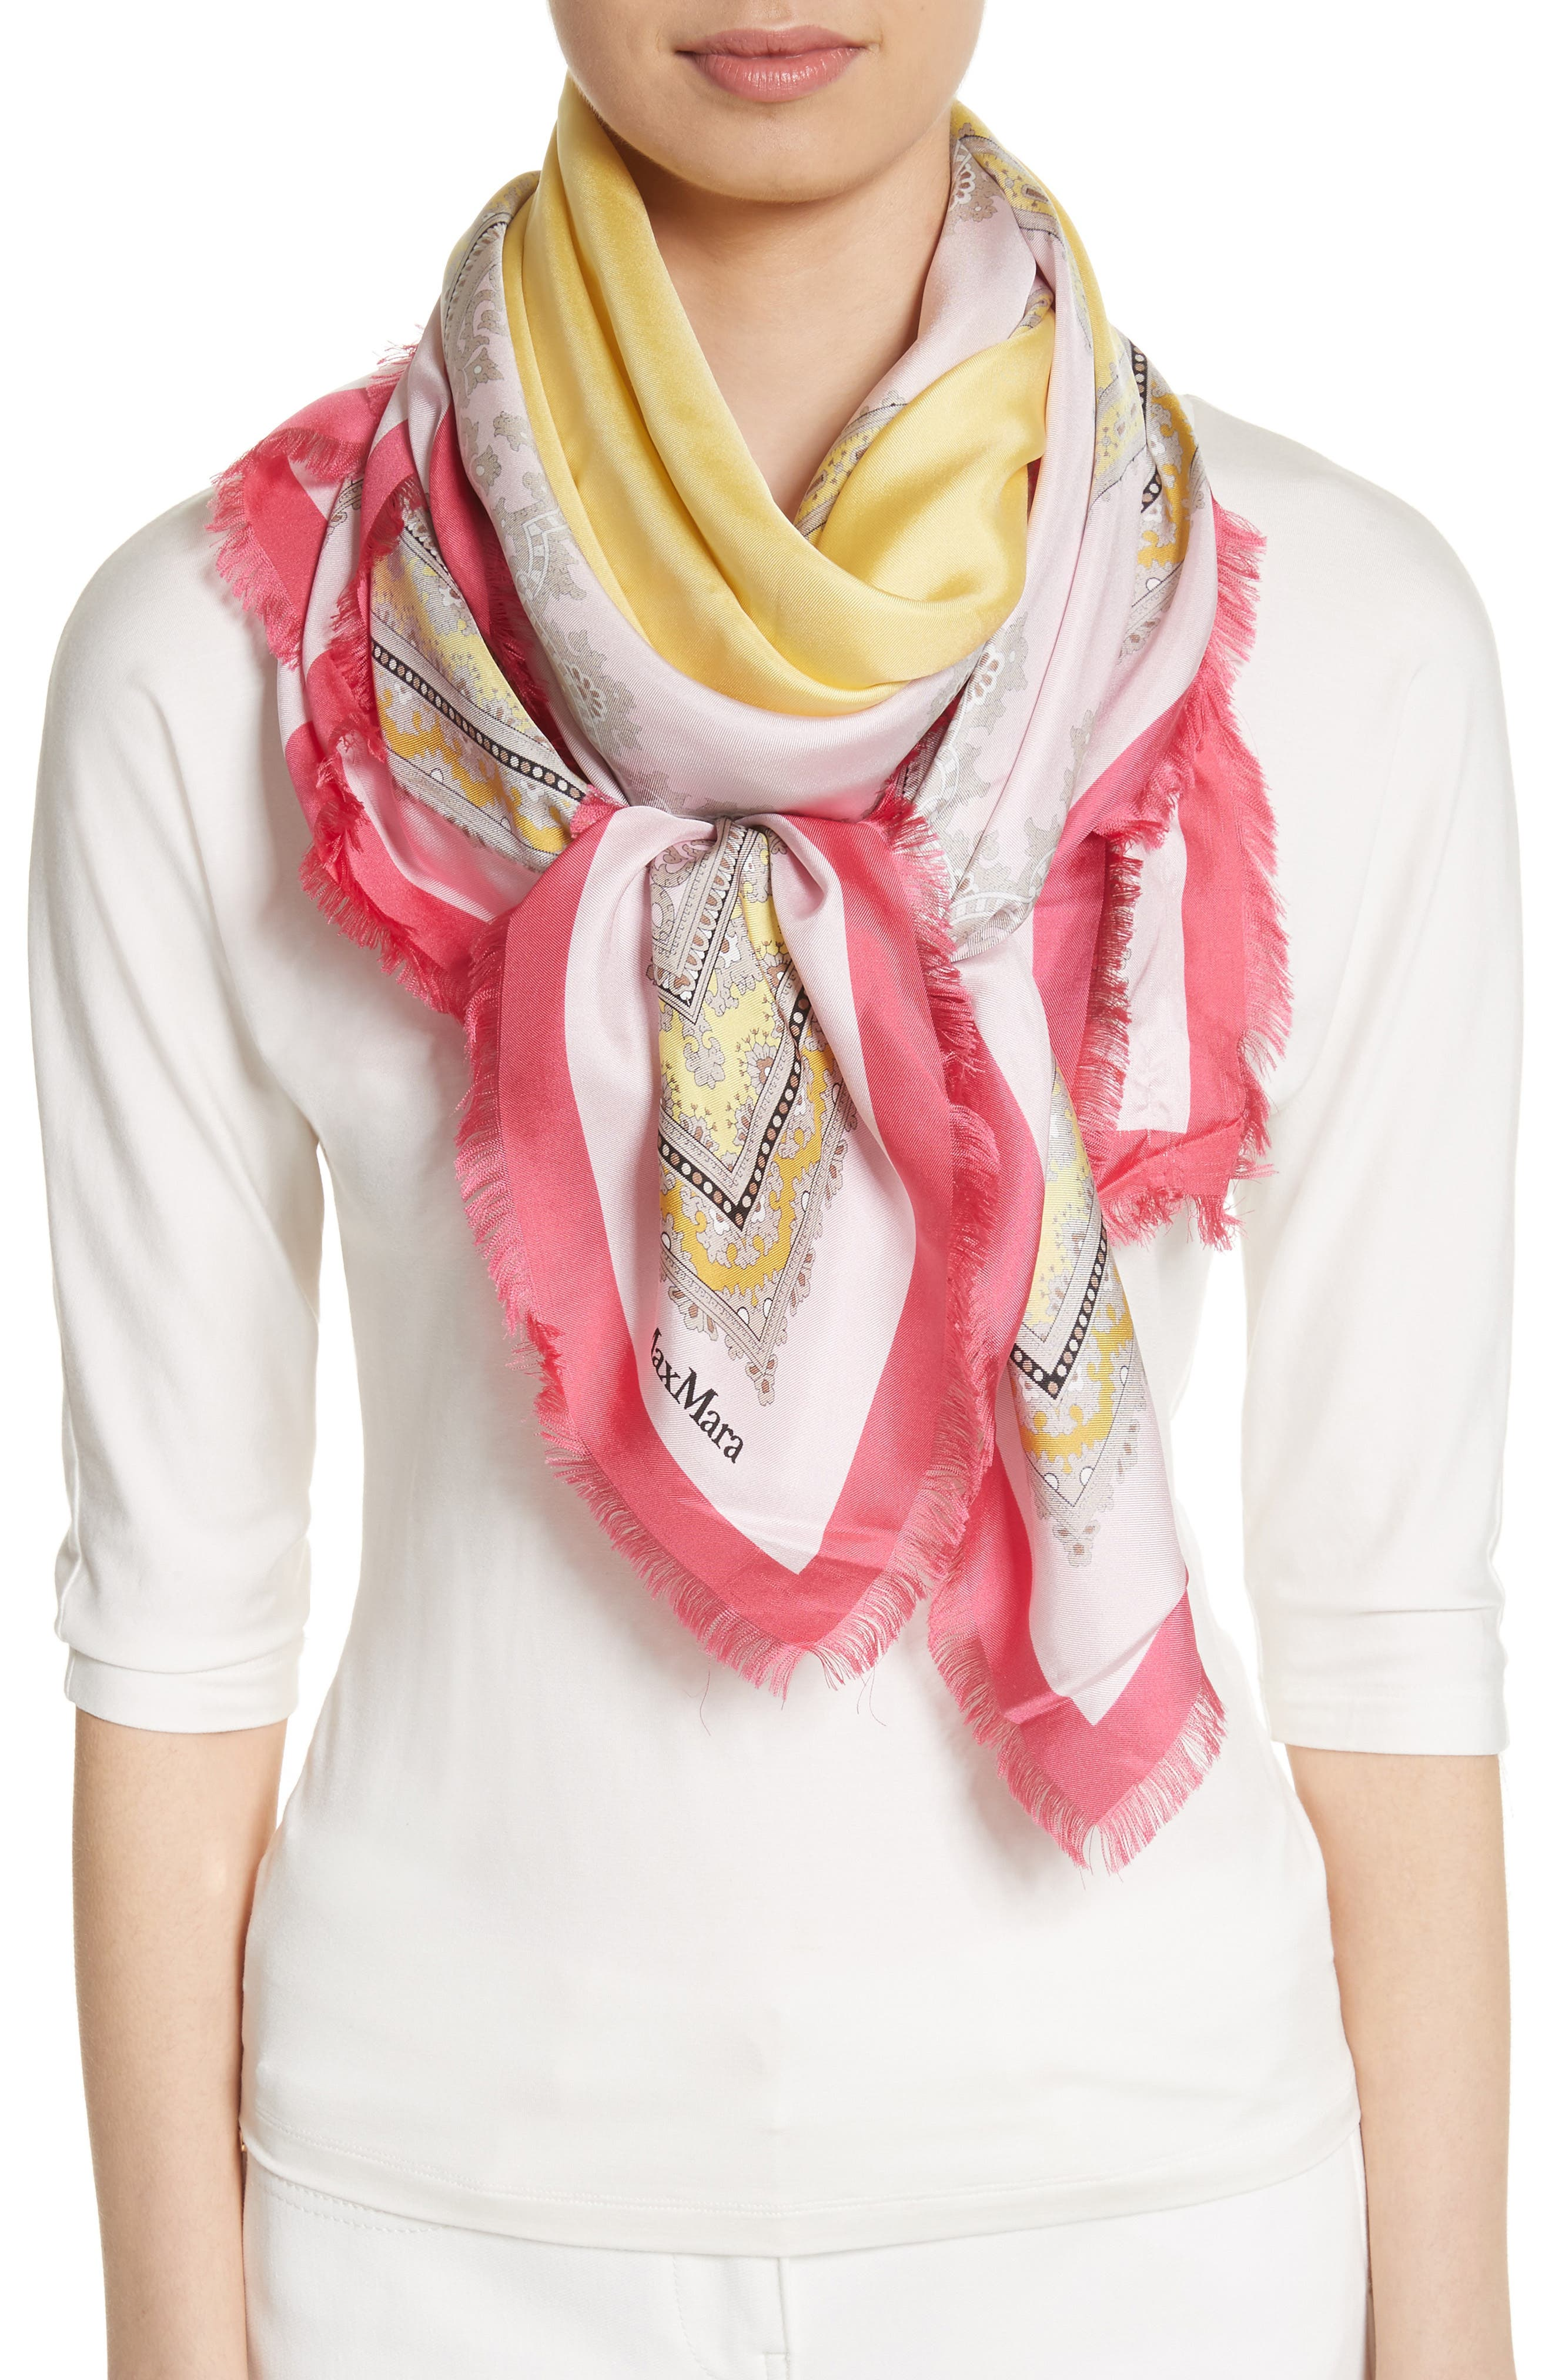 Ginepro Silk Scarf,                             Alternate thumbnail 2, color,                             Pink